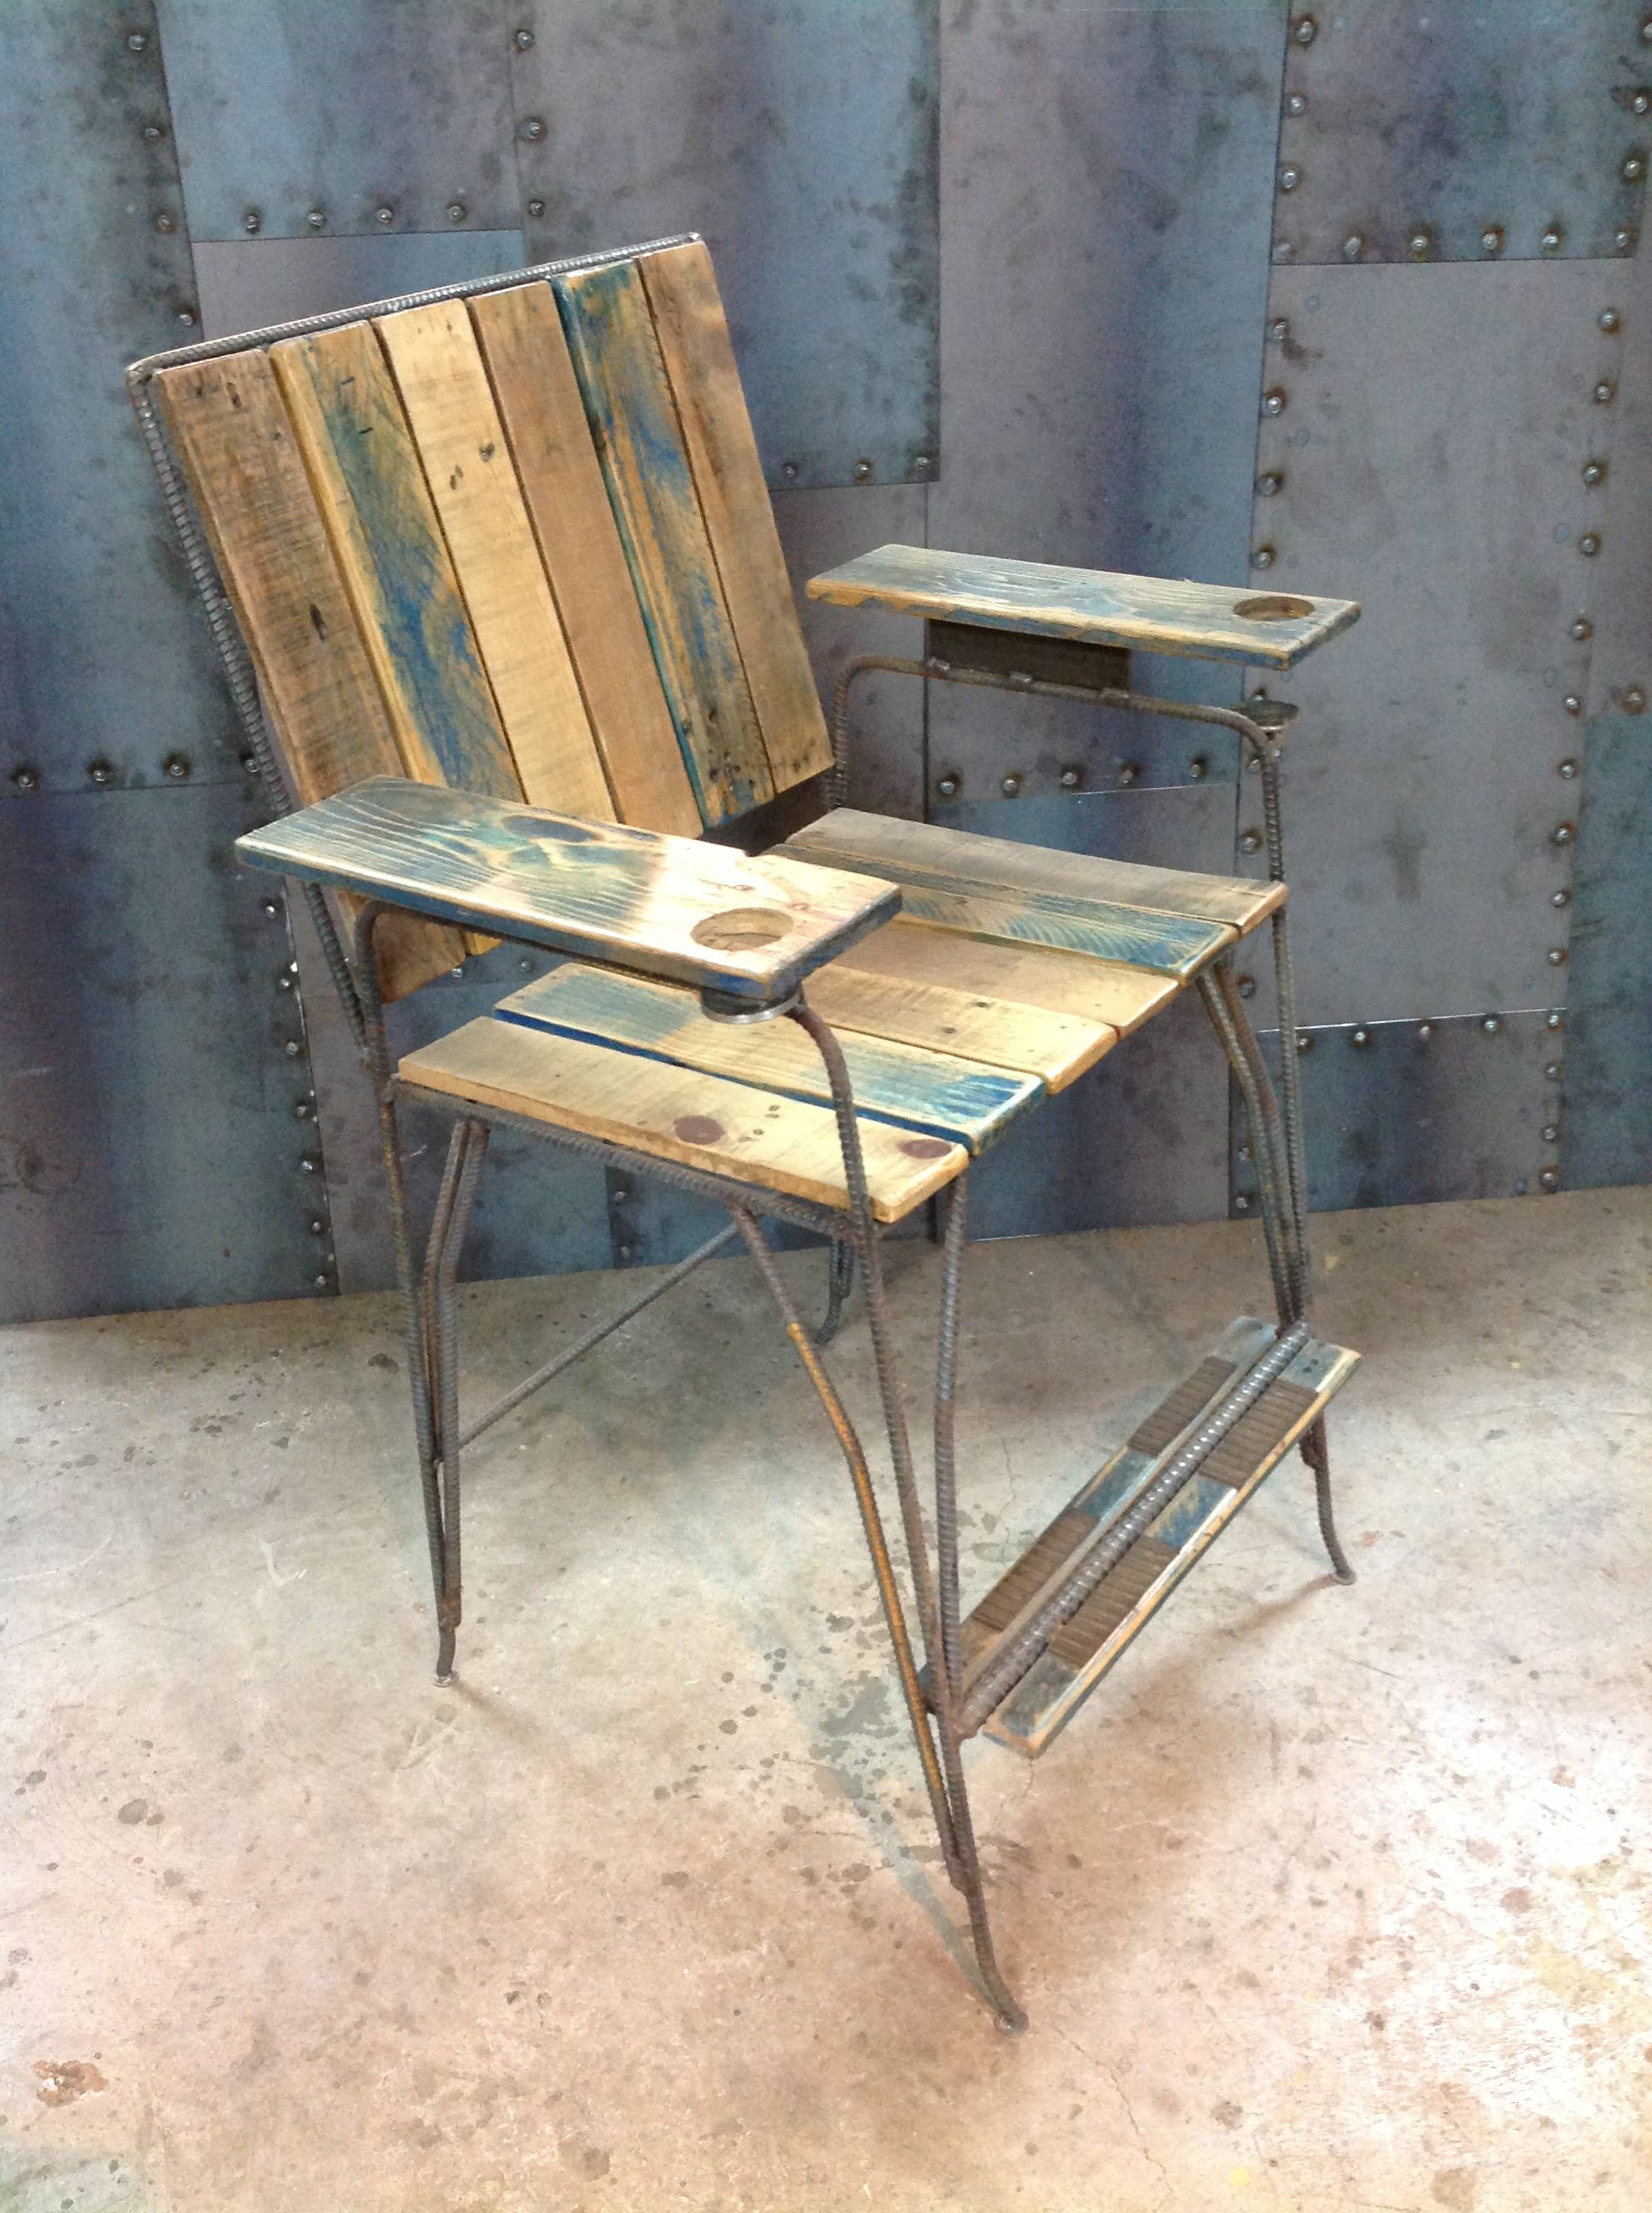 One Of The Best Director Chairs I Ve Ever Sat In By Far 100 Recycled 4 Rebar Steel And White Washed Pallete Wood It S E Chair Steel Furniture Furniture